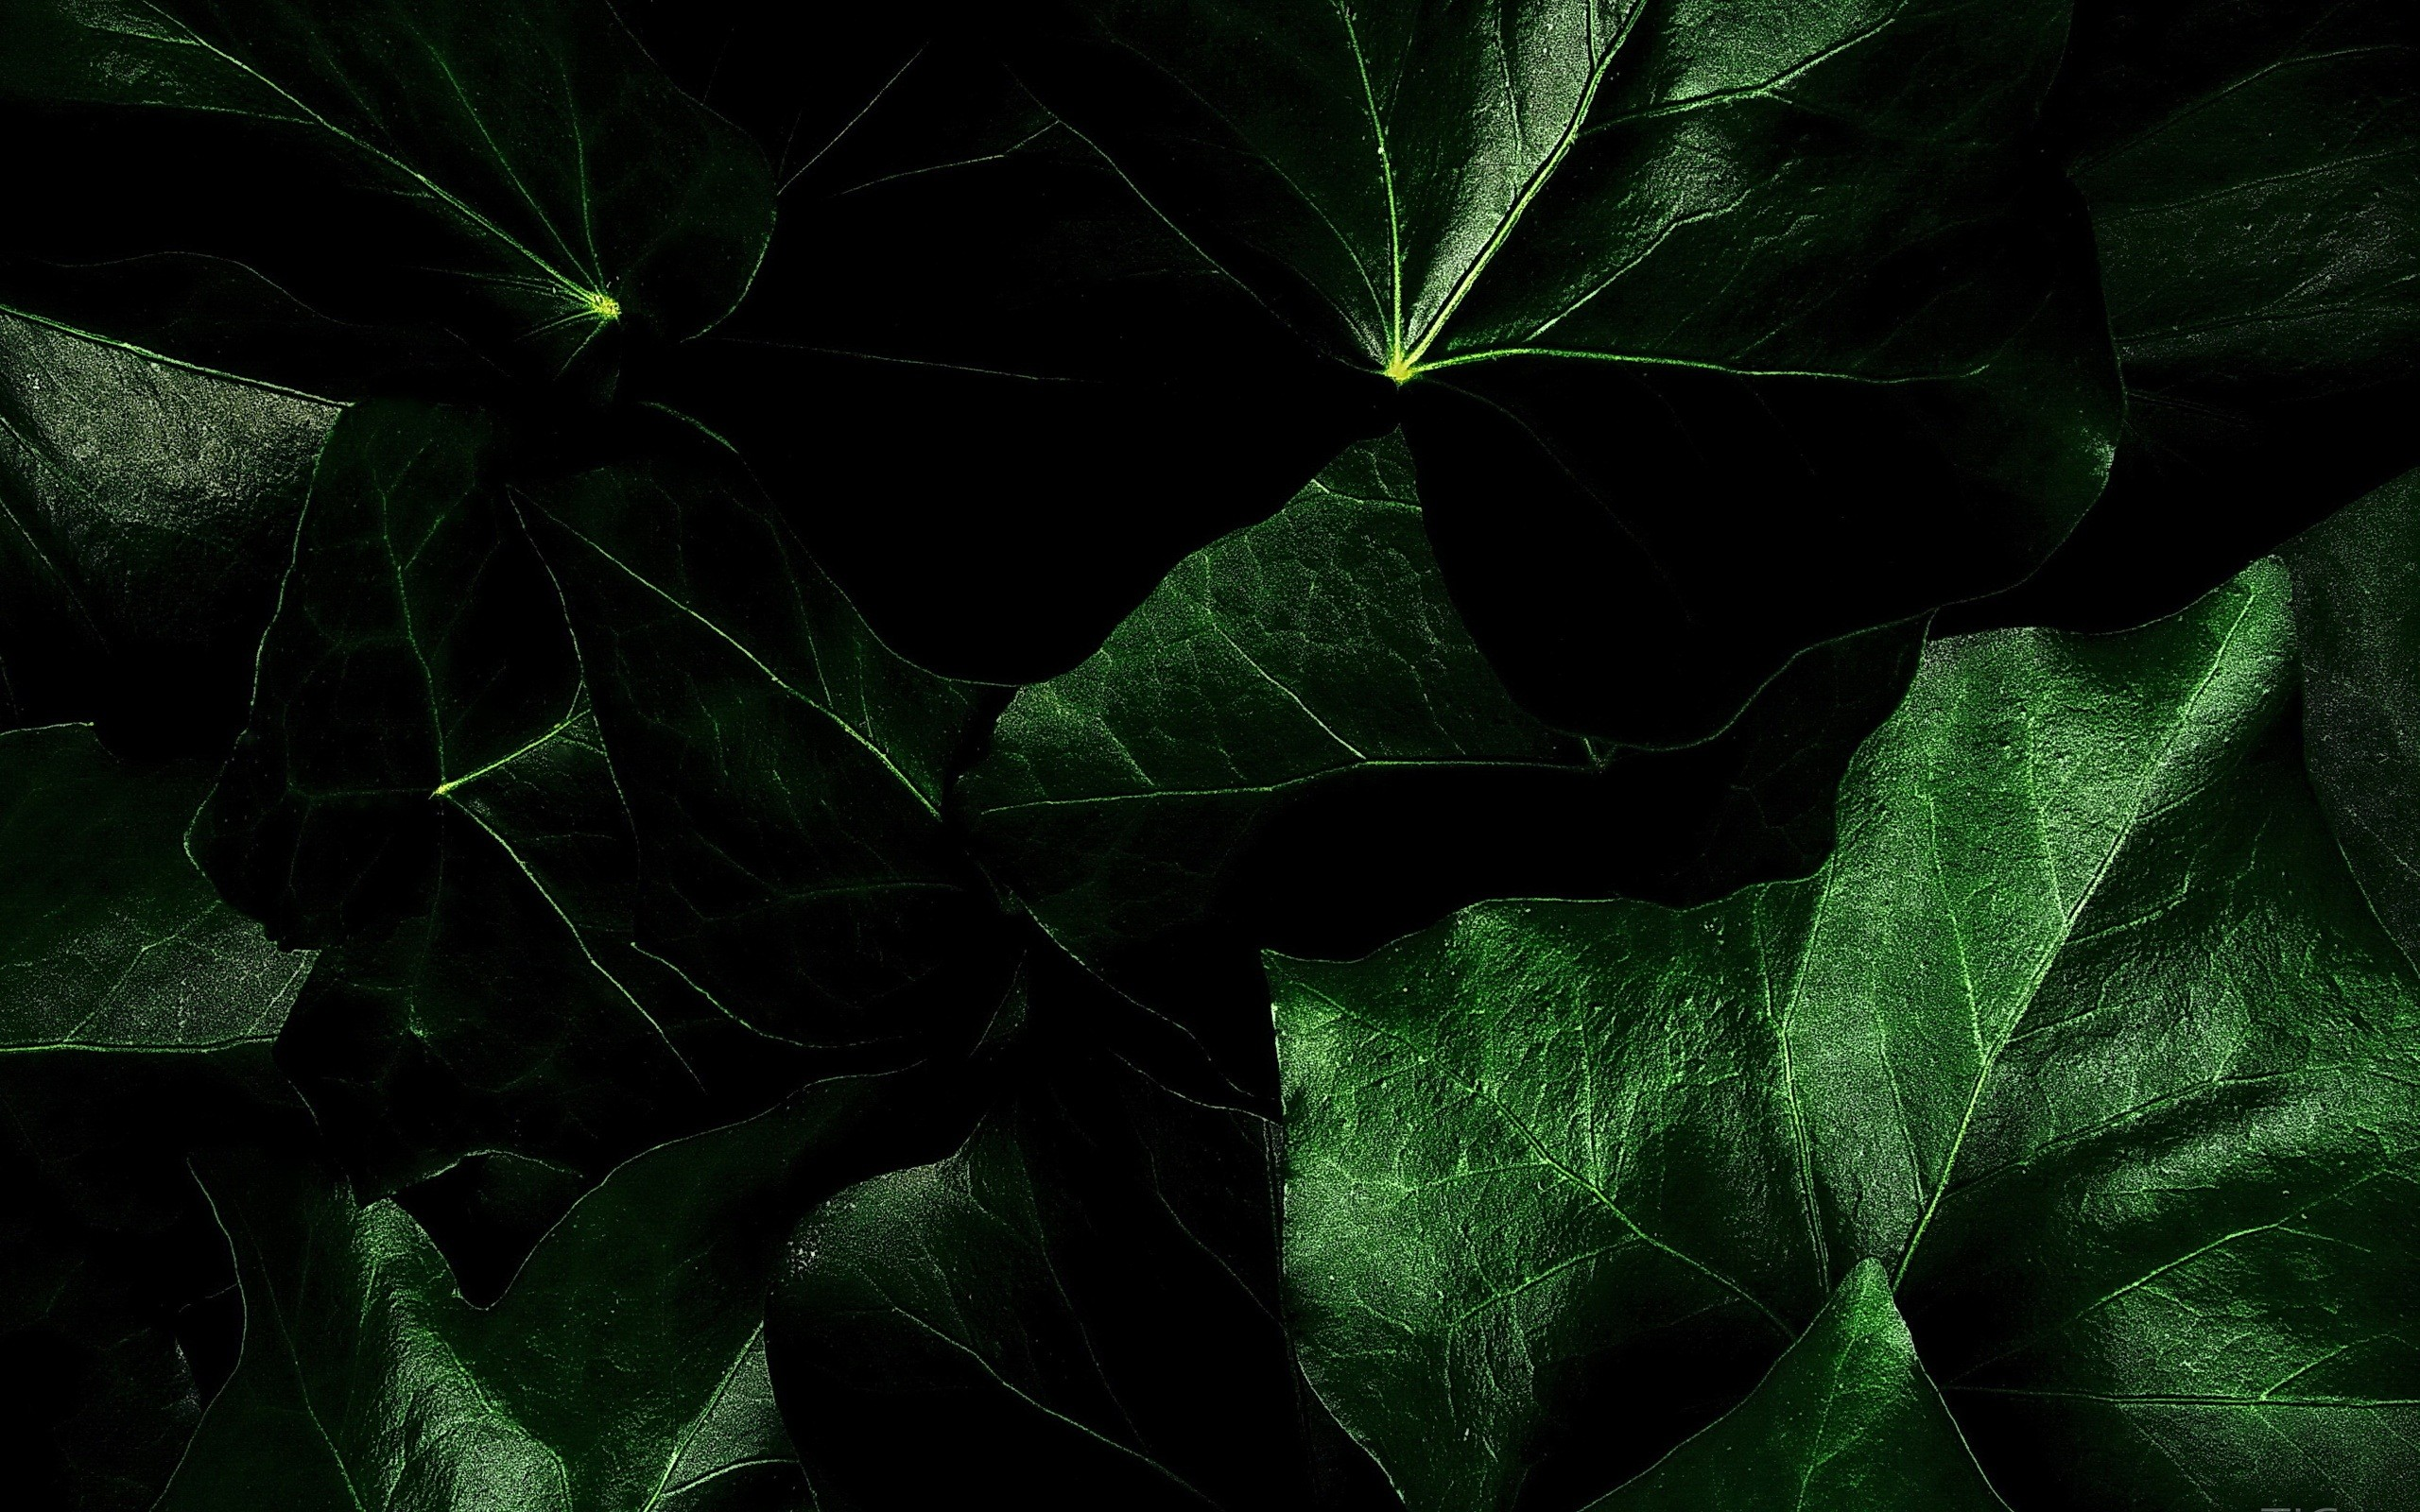 Fall Leaves Hd Wallpapers 1080p Dark Green Background 183 ① Download Free High Resolution